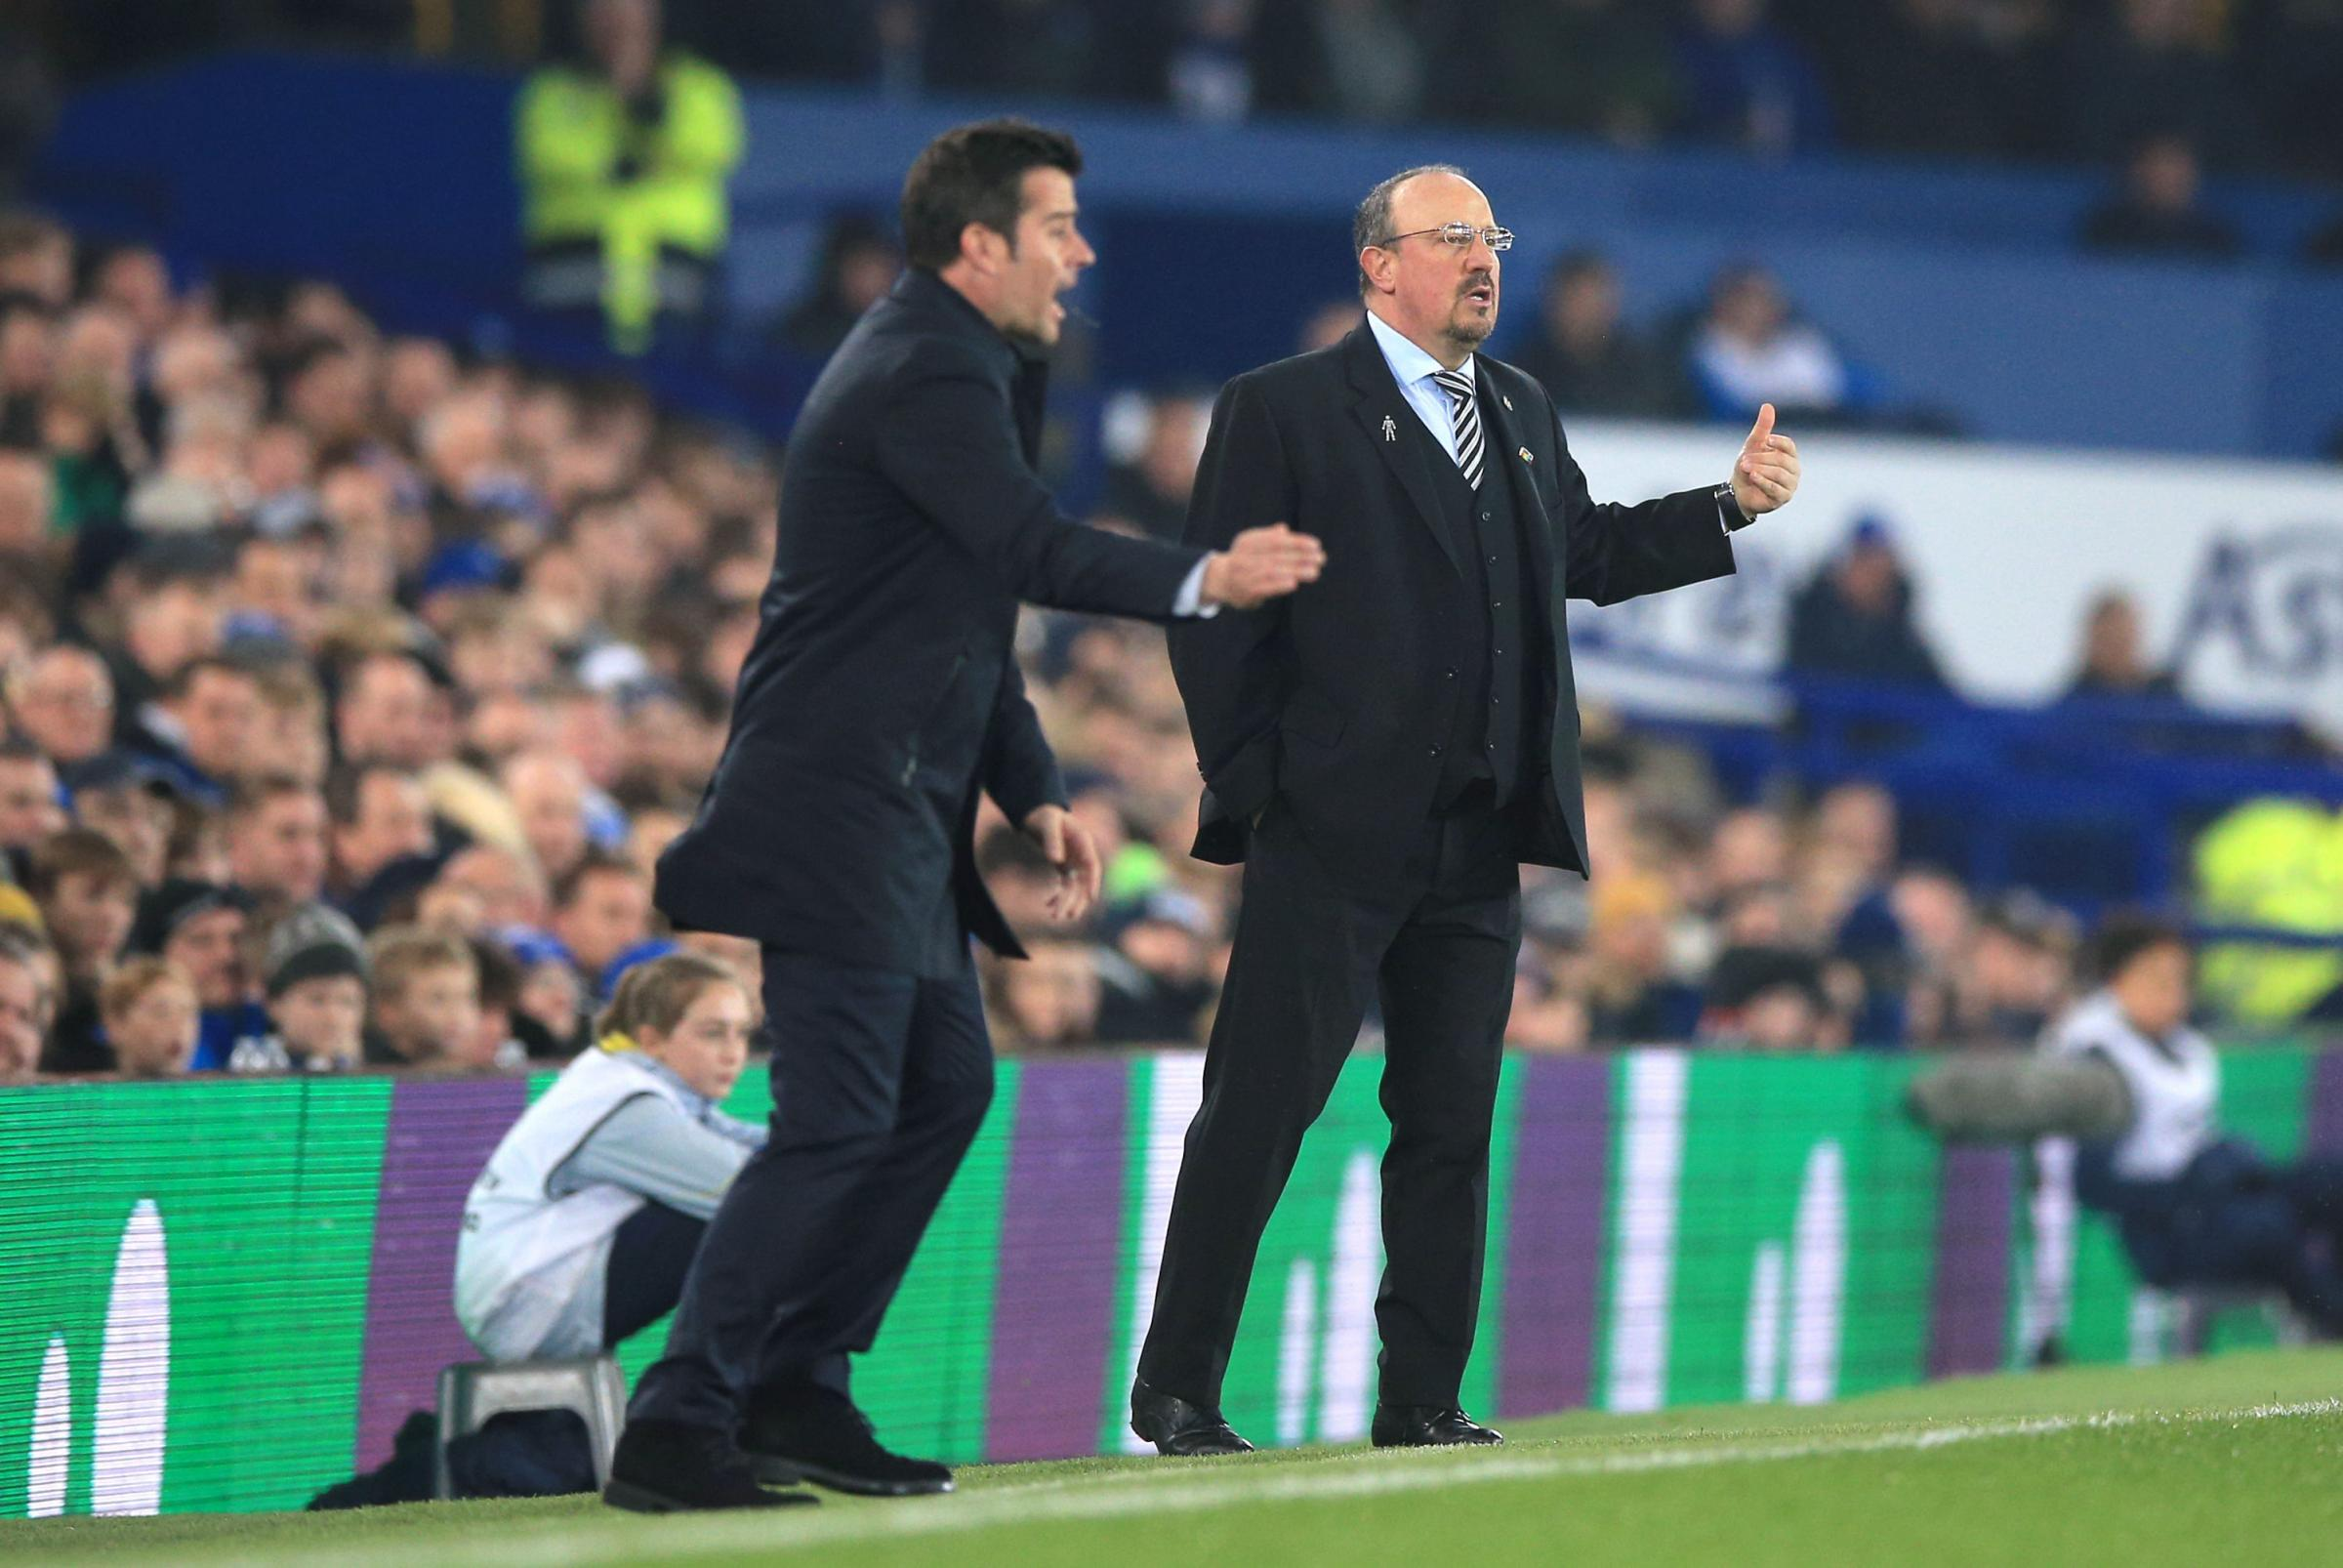 Newcastle United manager Rafael Benitez (right) and Everton manager Marco Silva on the touchline during the Premier League match at Goodison Park, Liverpool. PRESS ASSOCIATION Photo. Picture date: Wednesday December 5, 2018. See PA story SOCCER Everton. P